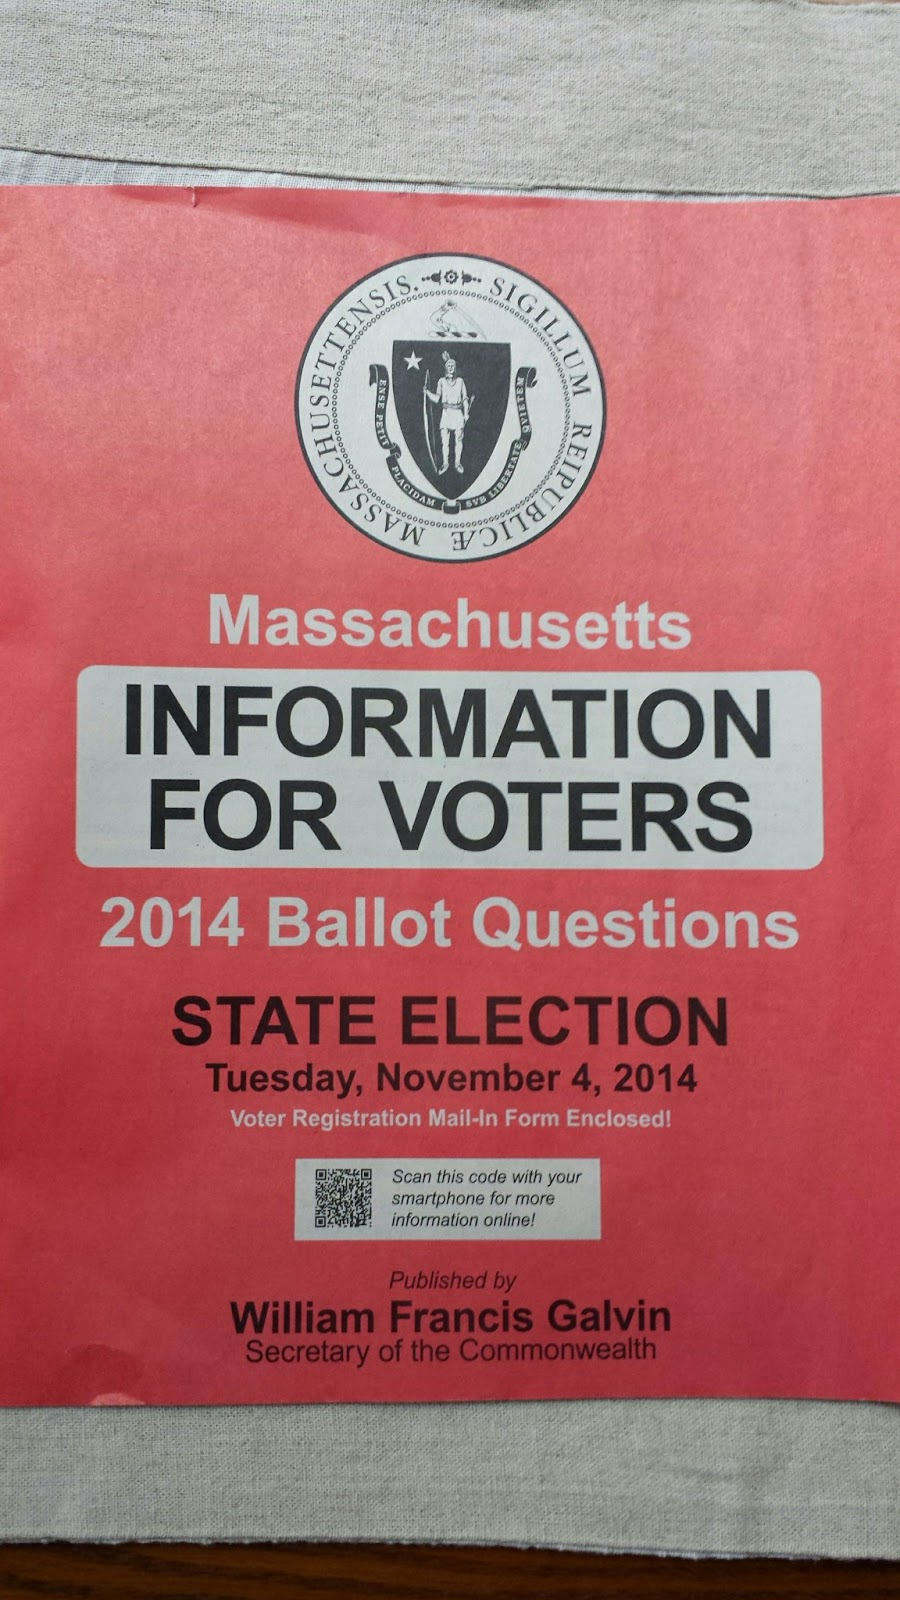 MA Information for Voters - Nov 4, 2014